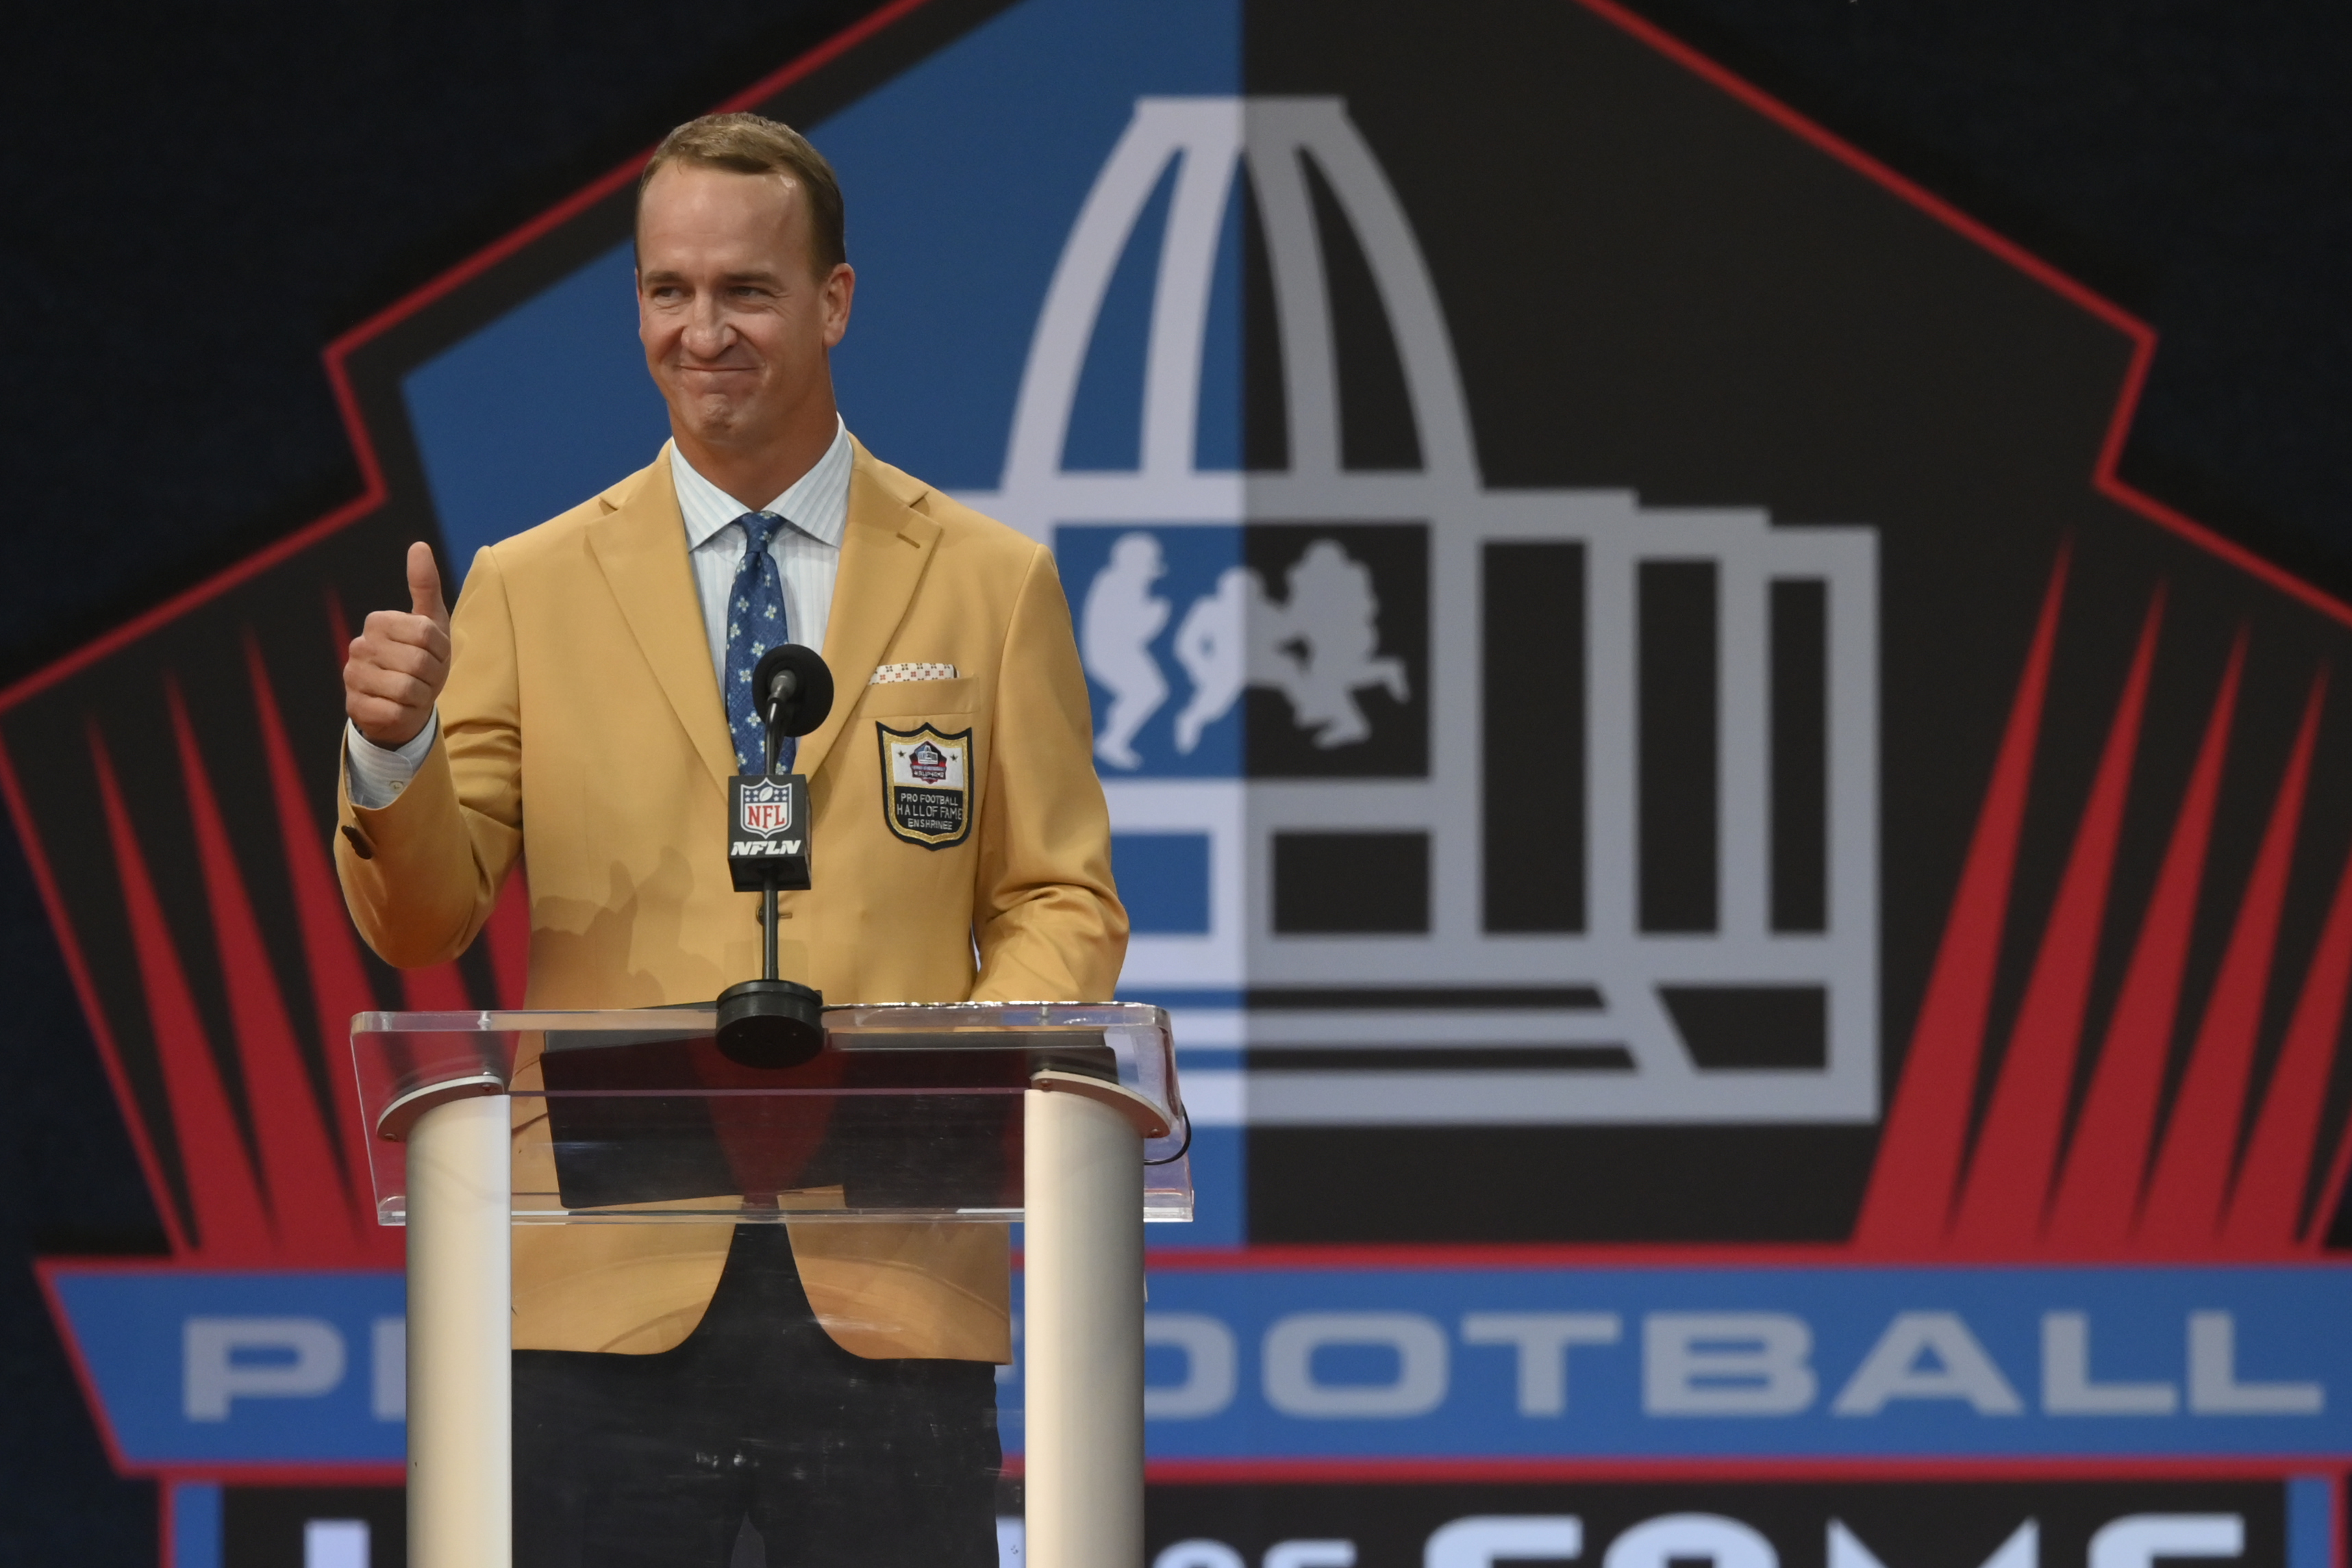 Peyton Manning, a member of the Pro Football Hall of Fame Class of 2021, speaks at the induction ceremony in Canton, Ohio.